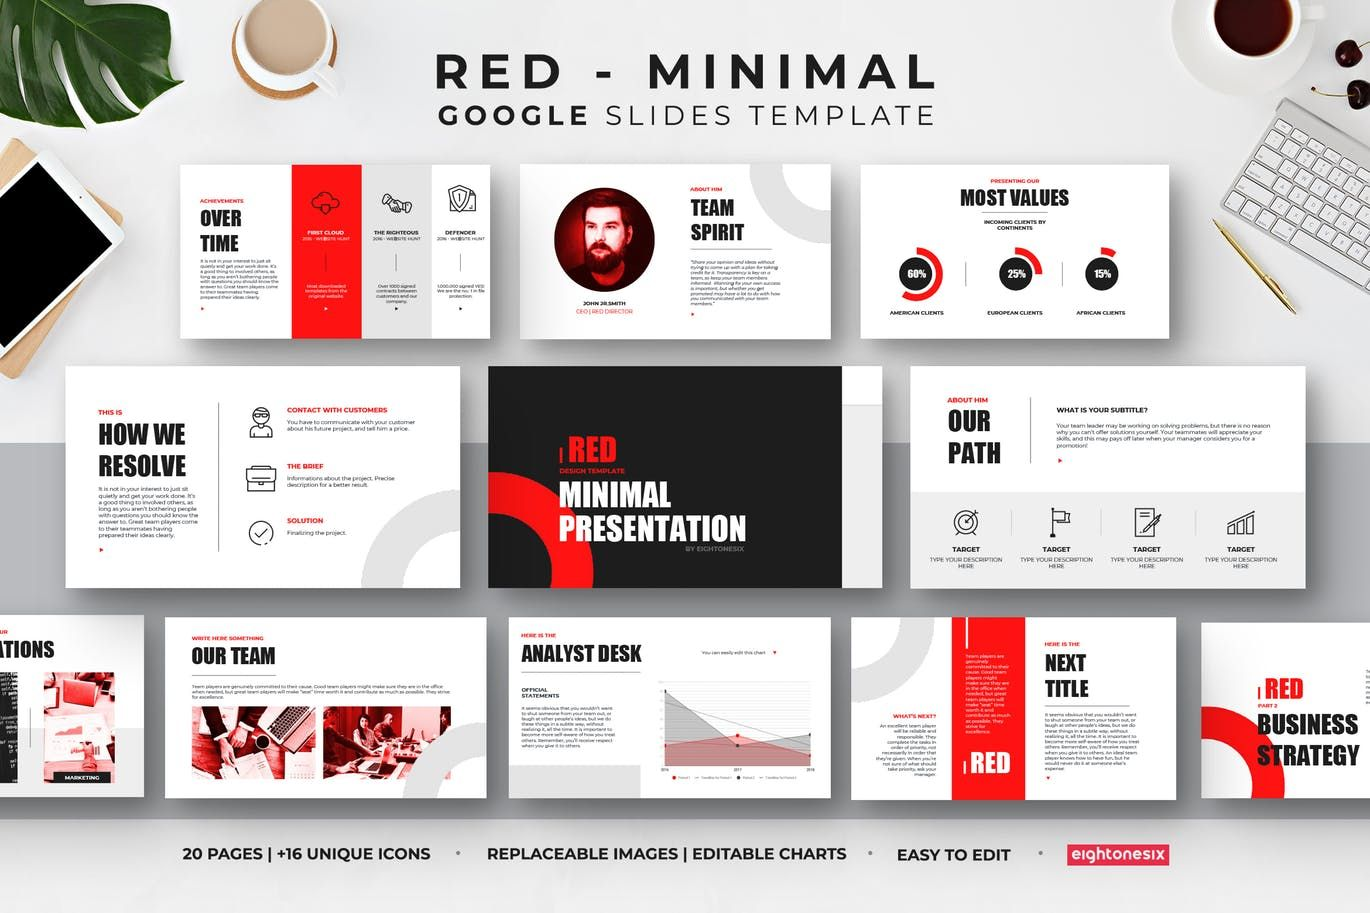 Minimal Google Slides Presentation Template By Eightonesixstudios On Envato Elements Presentation Slides Templates Presentation Templates Presentation Design Template